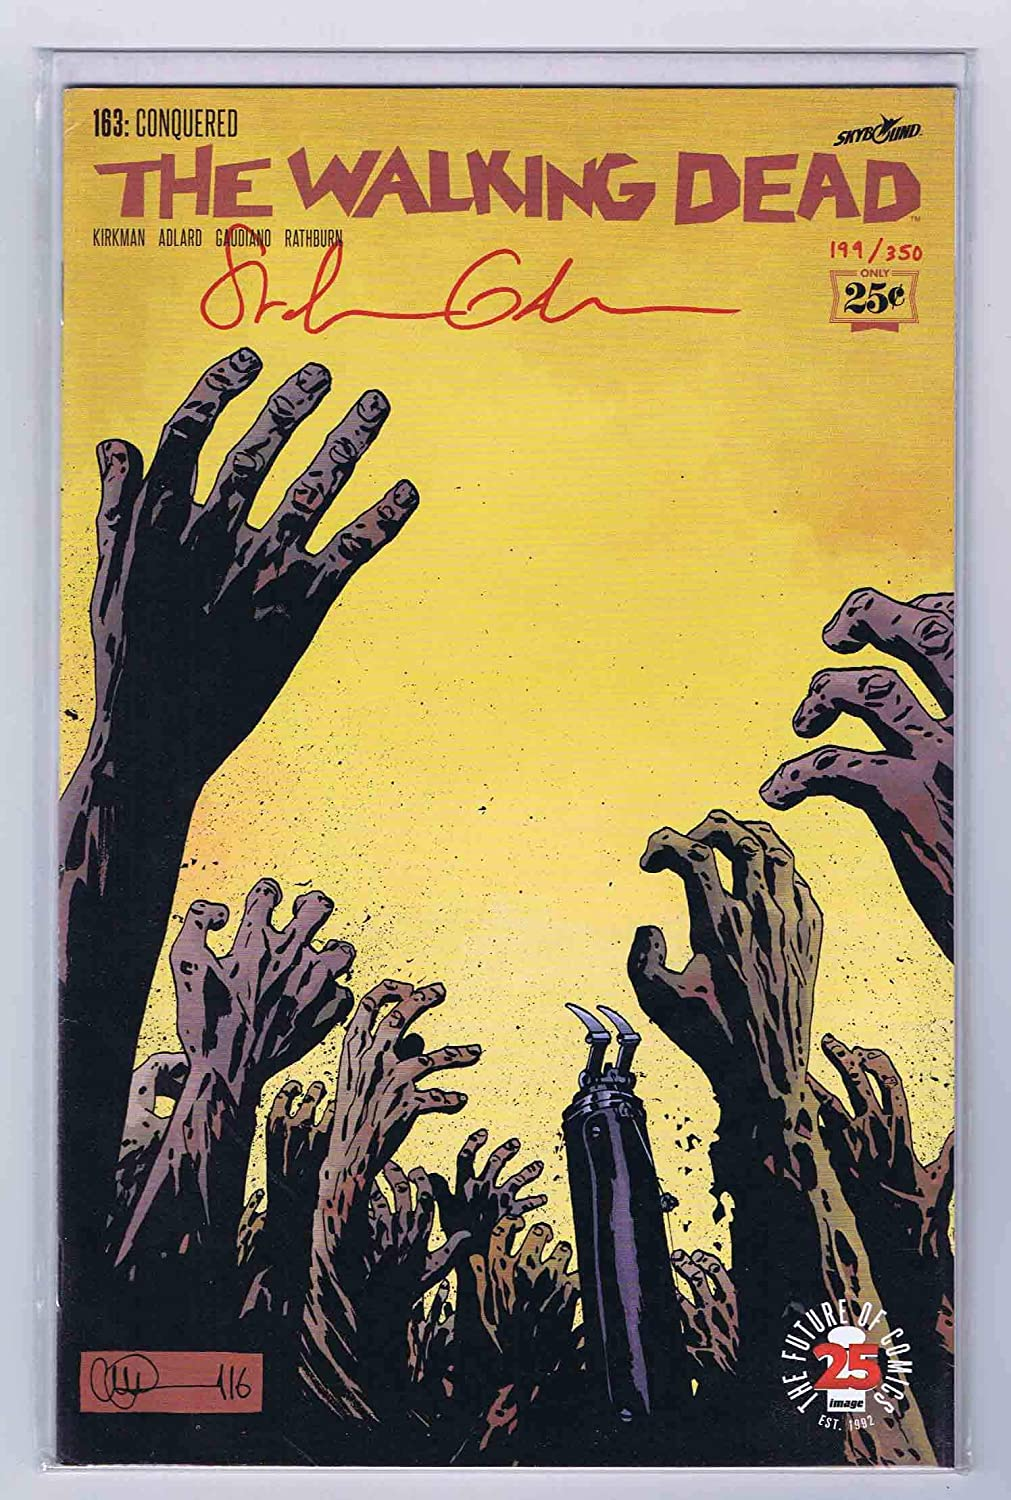 The Walking Dead #163 VF/NM Signed Blood Red Gaudiano w/COA #199/350 DF Sealed Image Comics